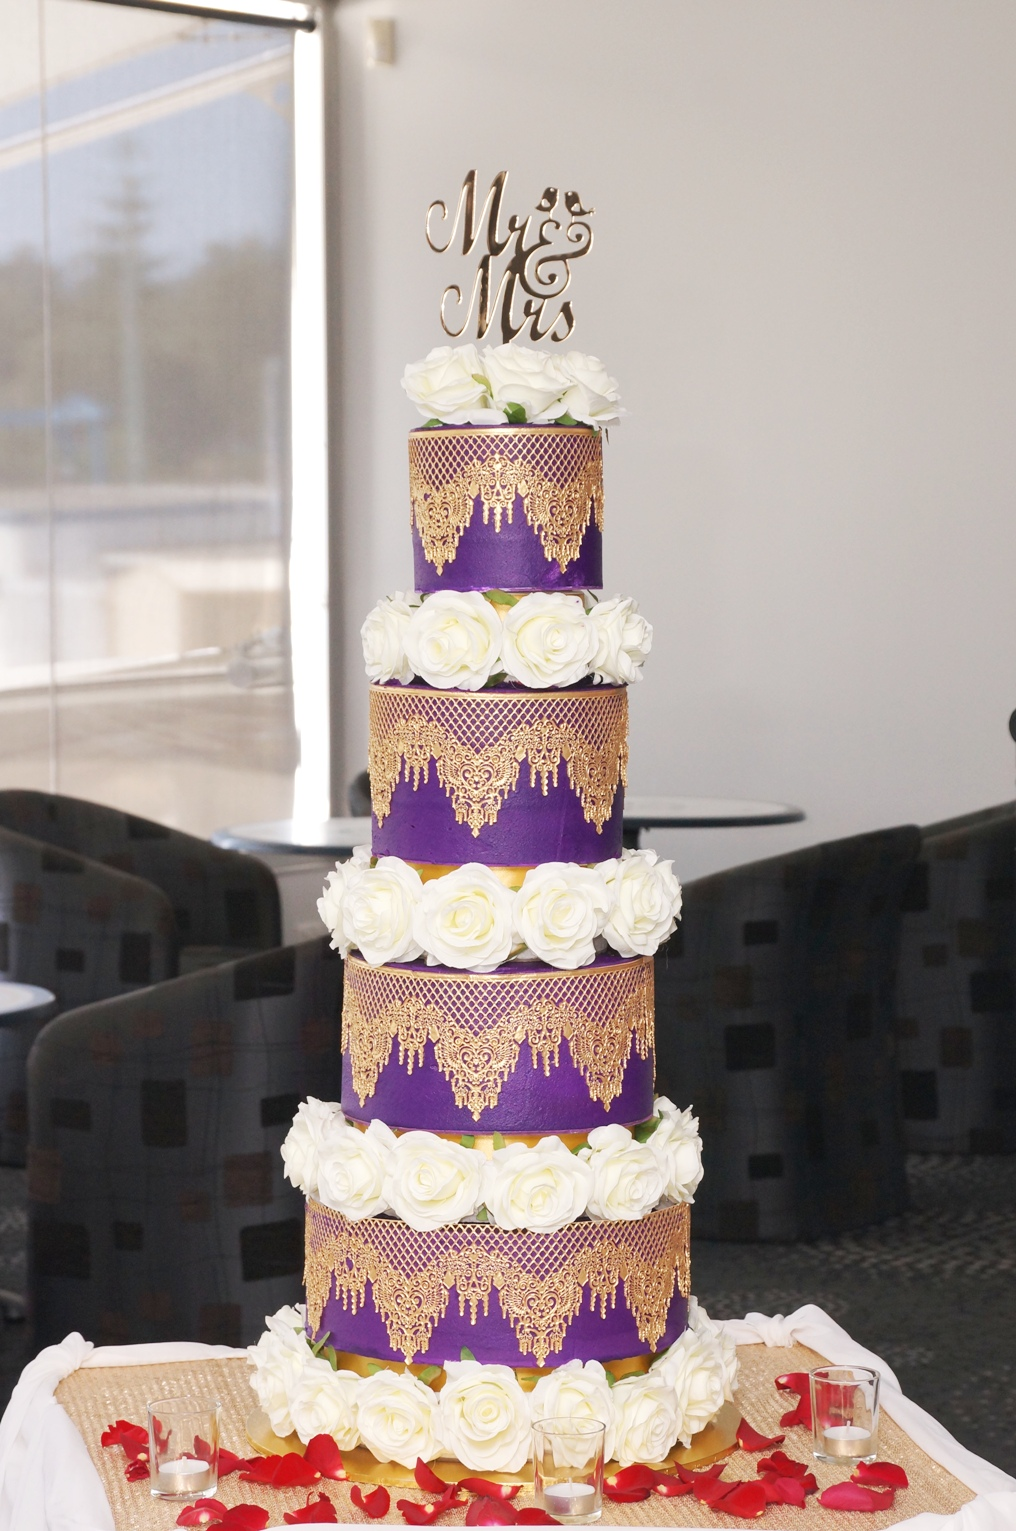 8 Tier Purple and Gold Cake with White s